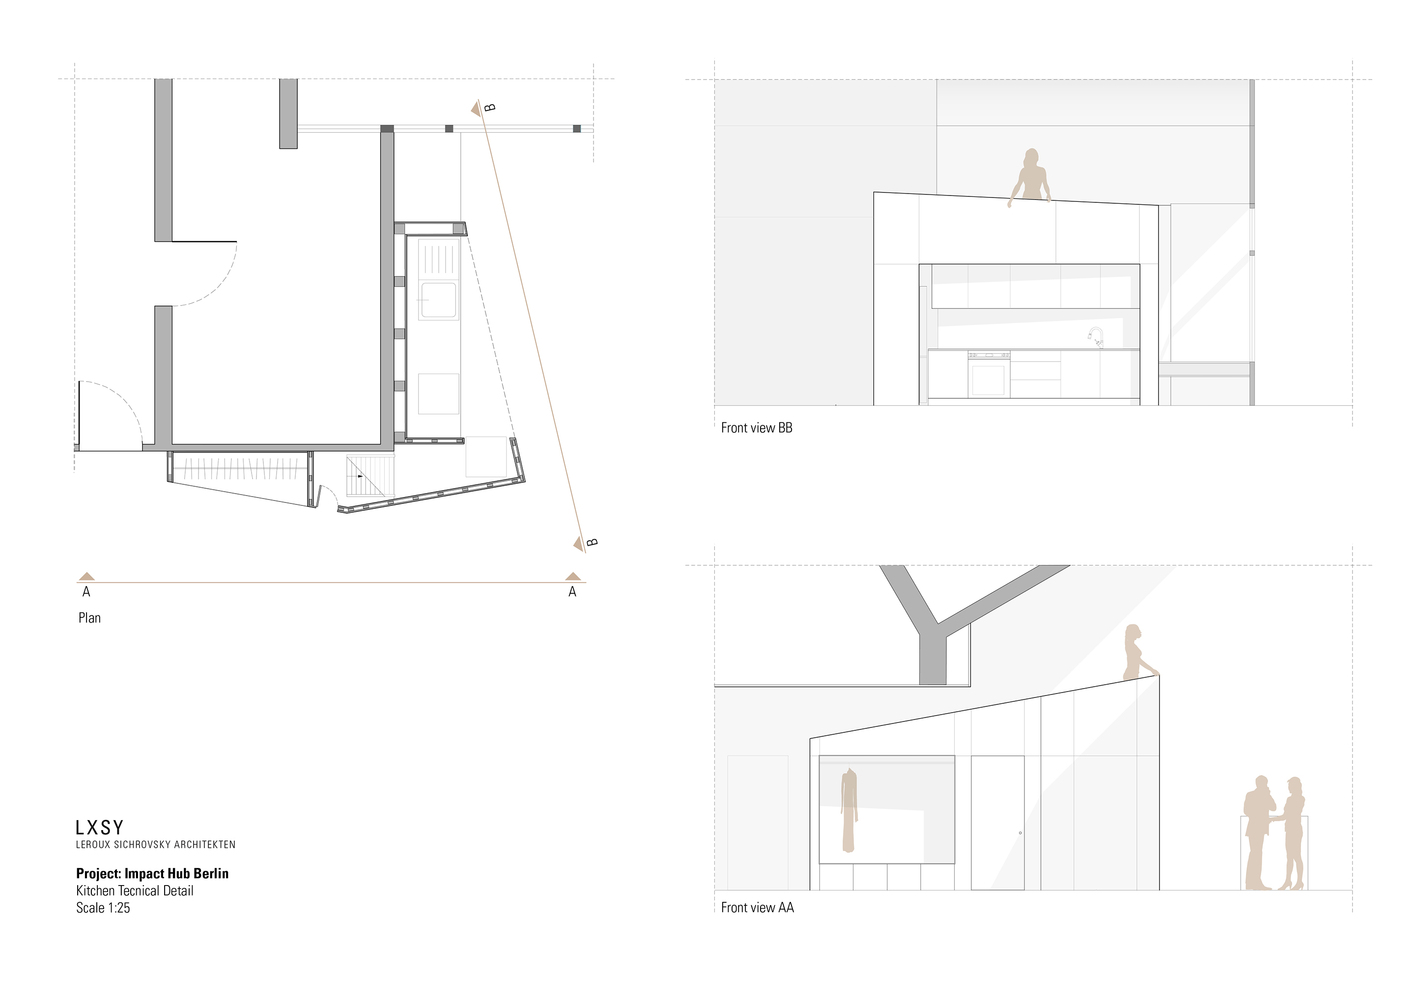 100 floor plan front view architectural linear